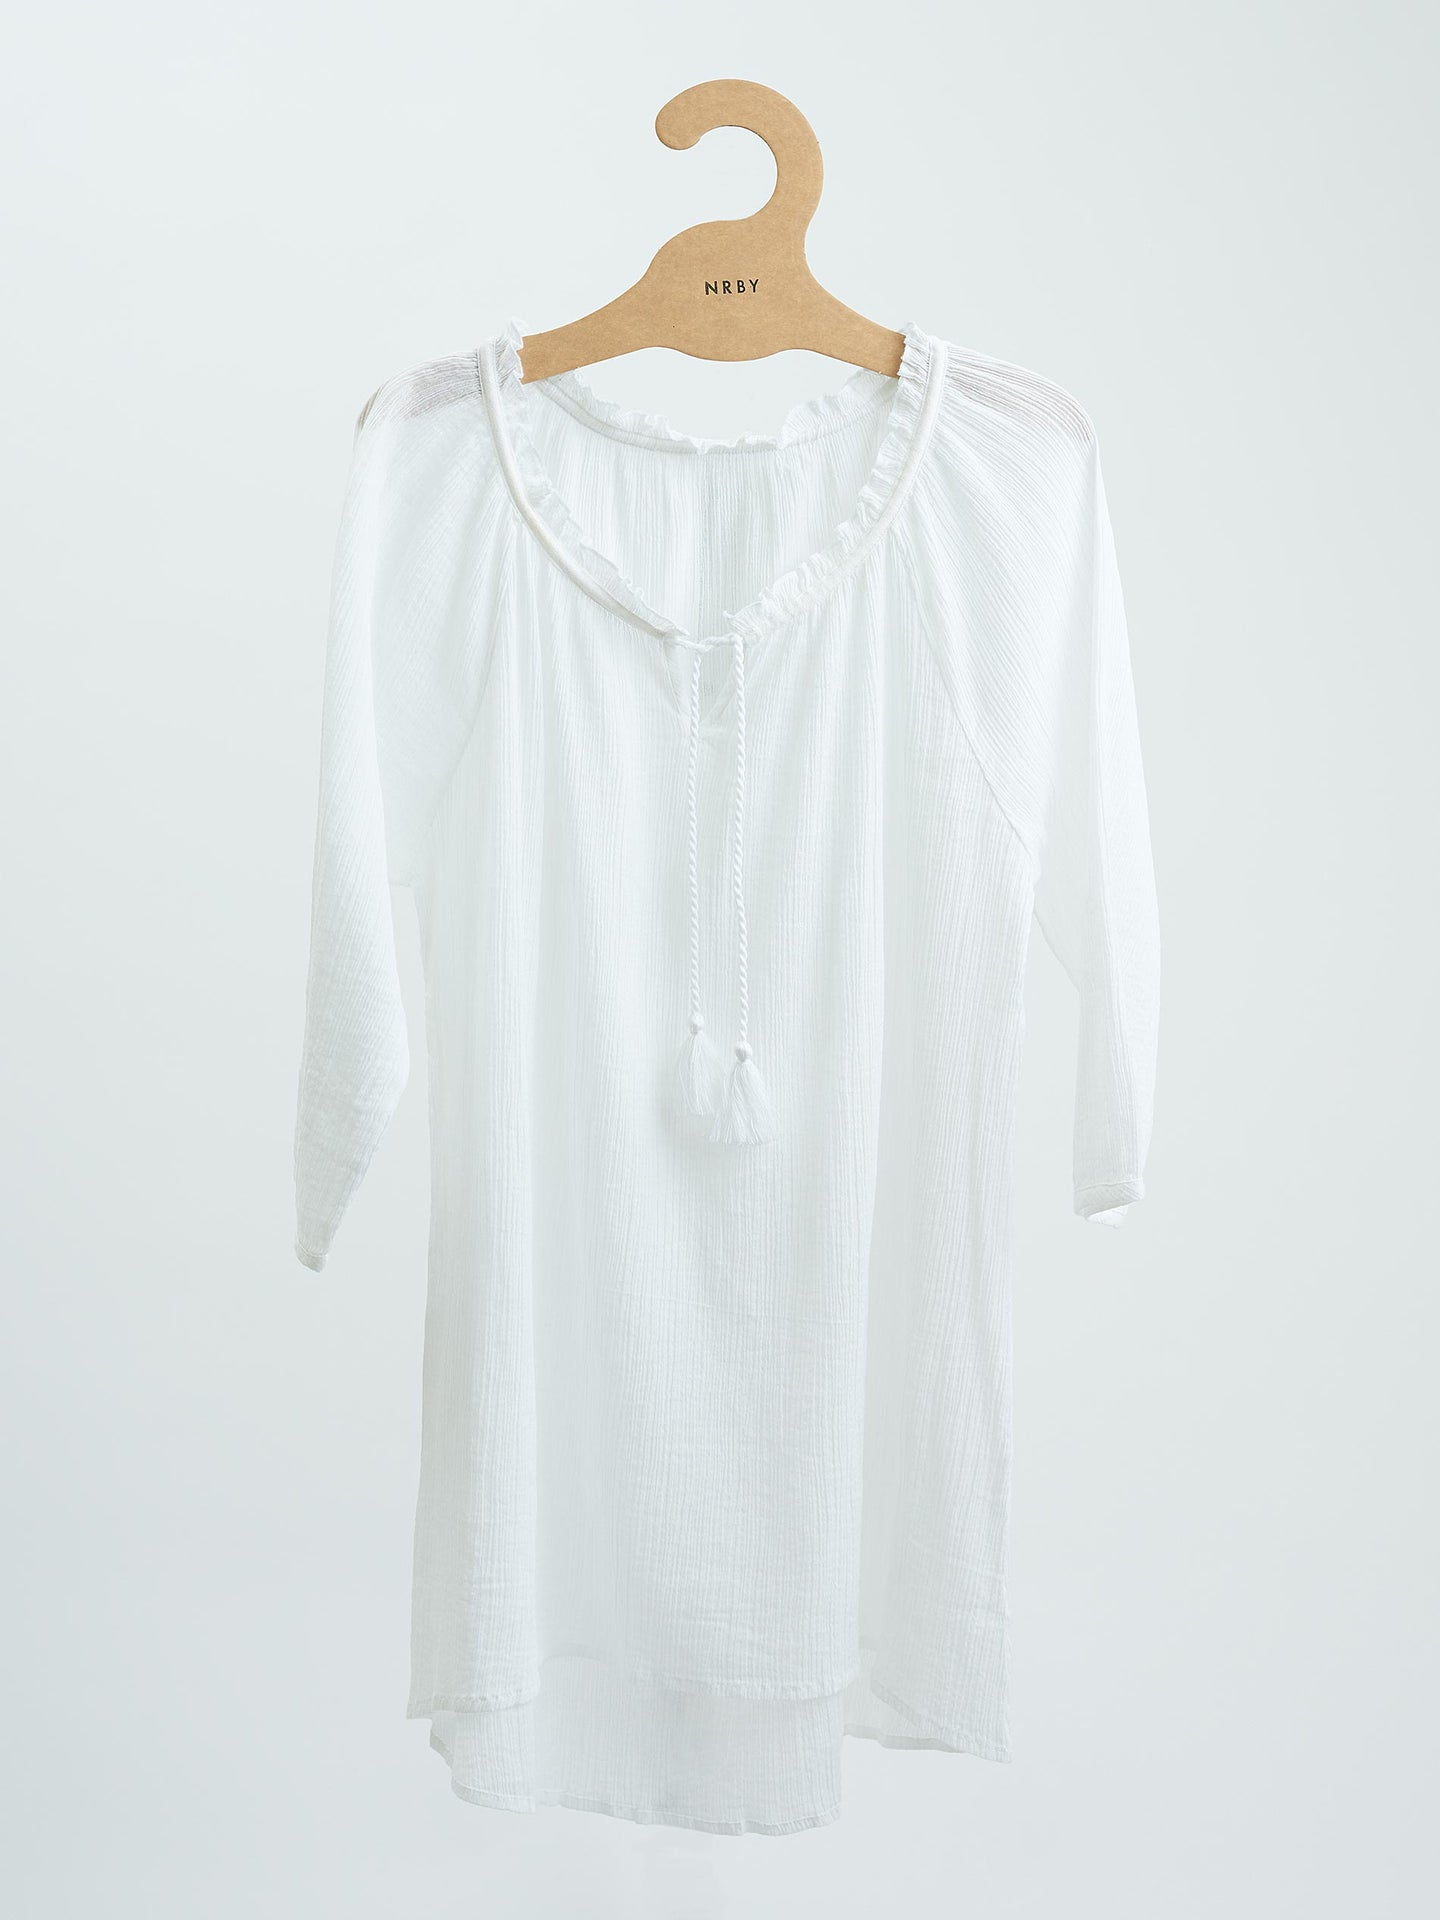 Rosie cheesecloth blouse white